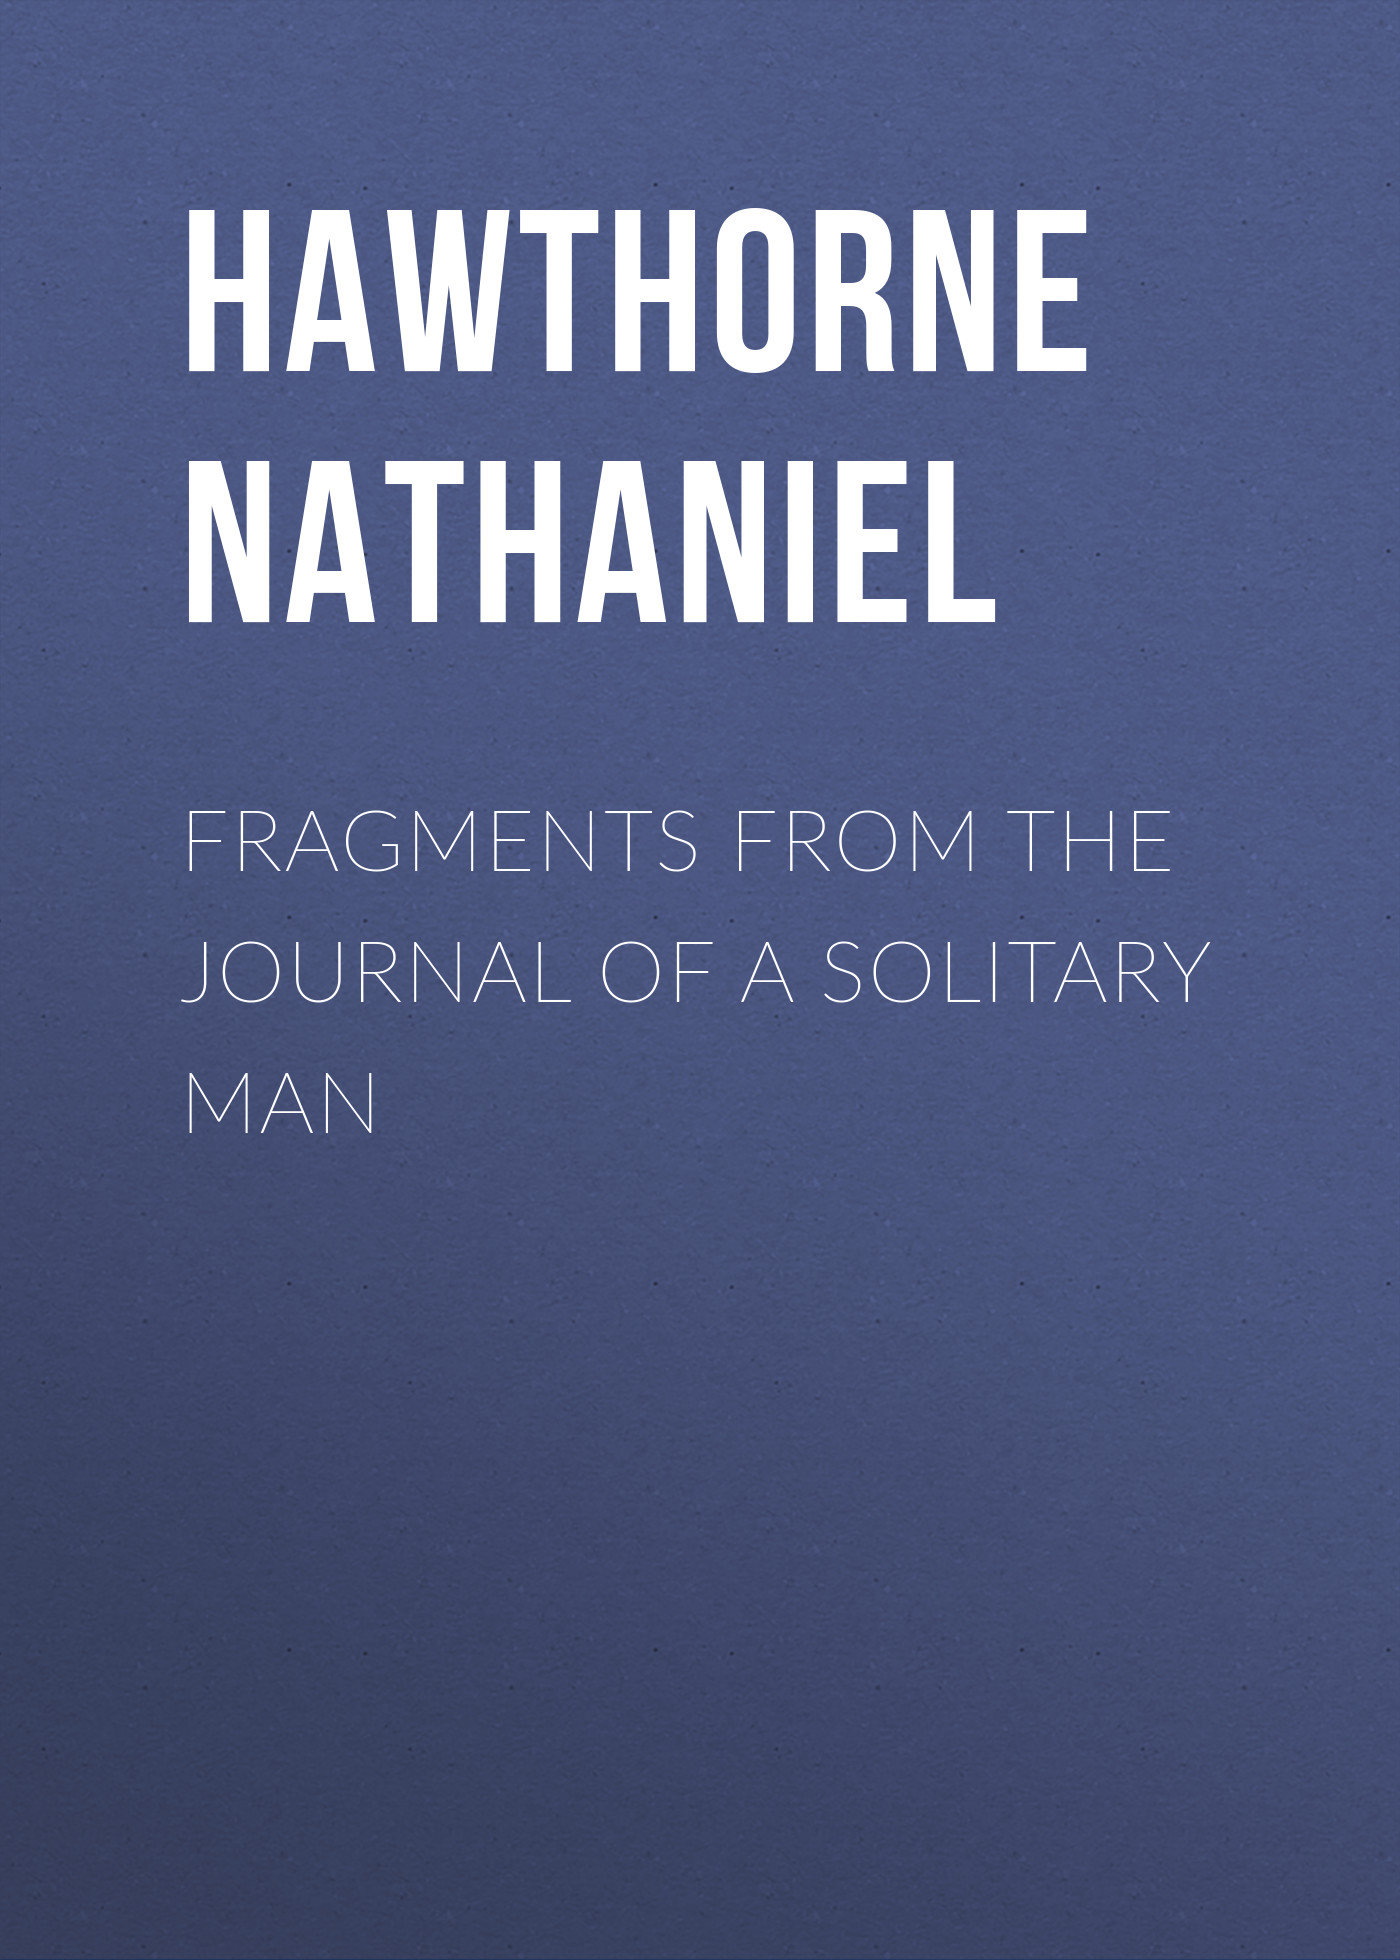 Hawthorne Nathaniel Fragments from the Journal of a Solitary Man prediction of bone length from bone fragments